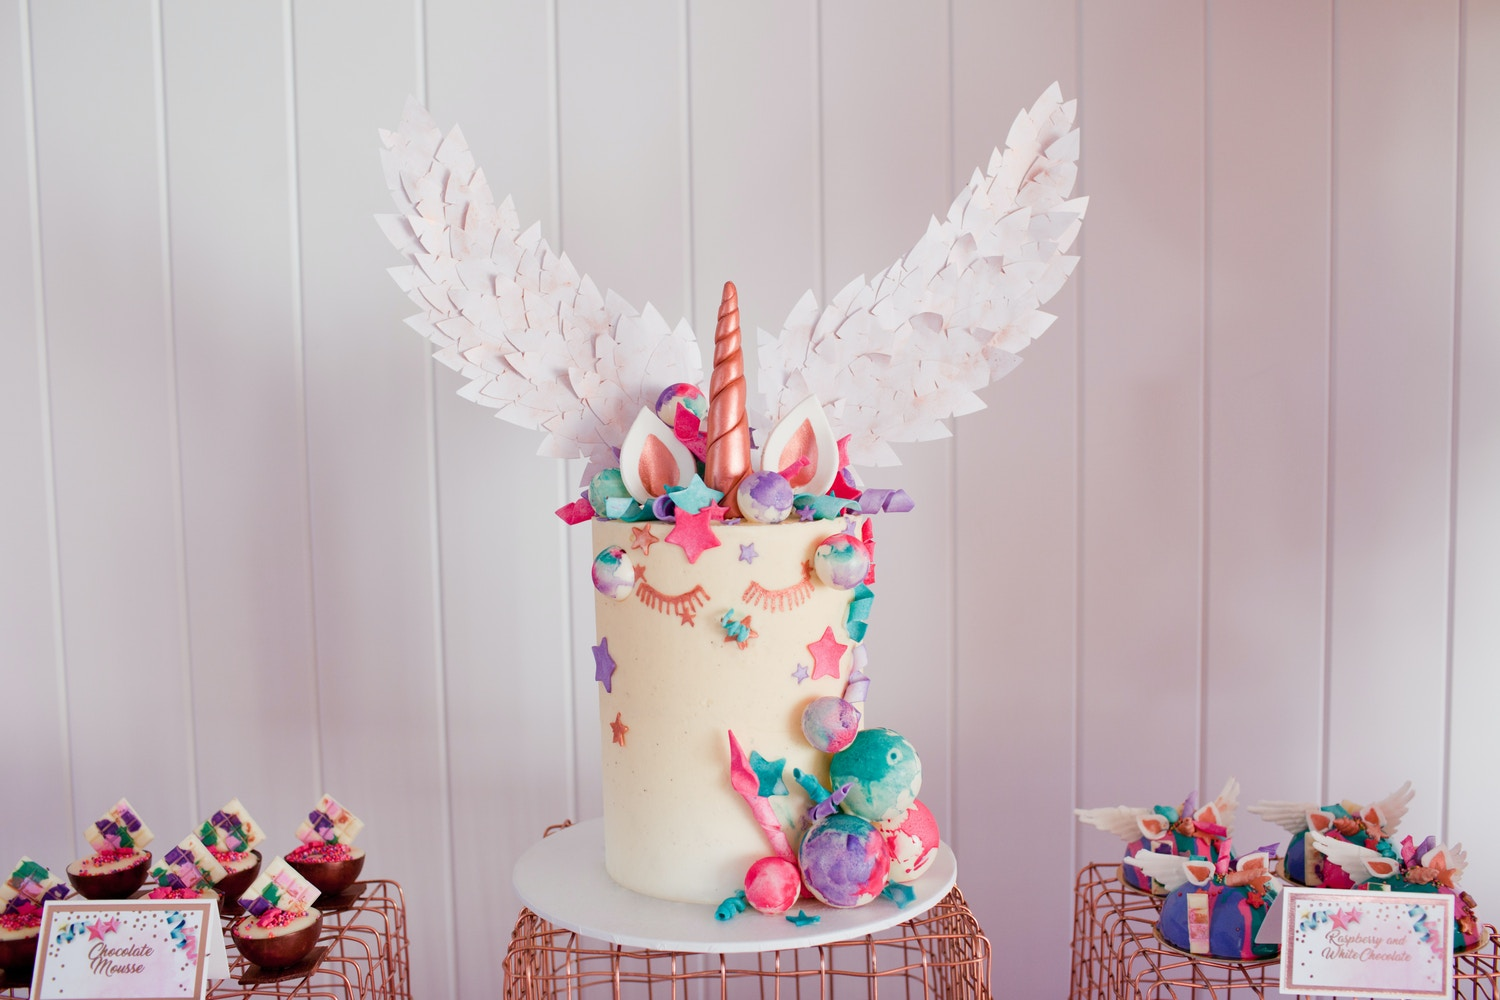 CAKE TRENDS WITH LIFES LITTLE CELEBRATIONS